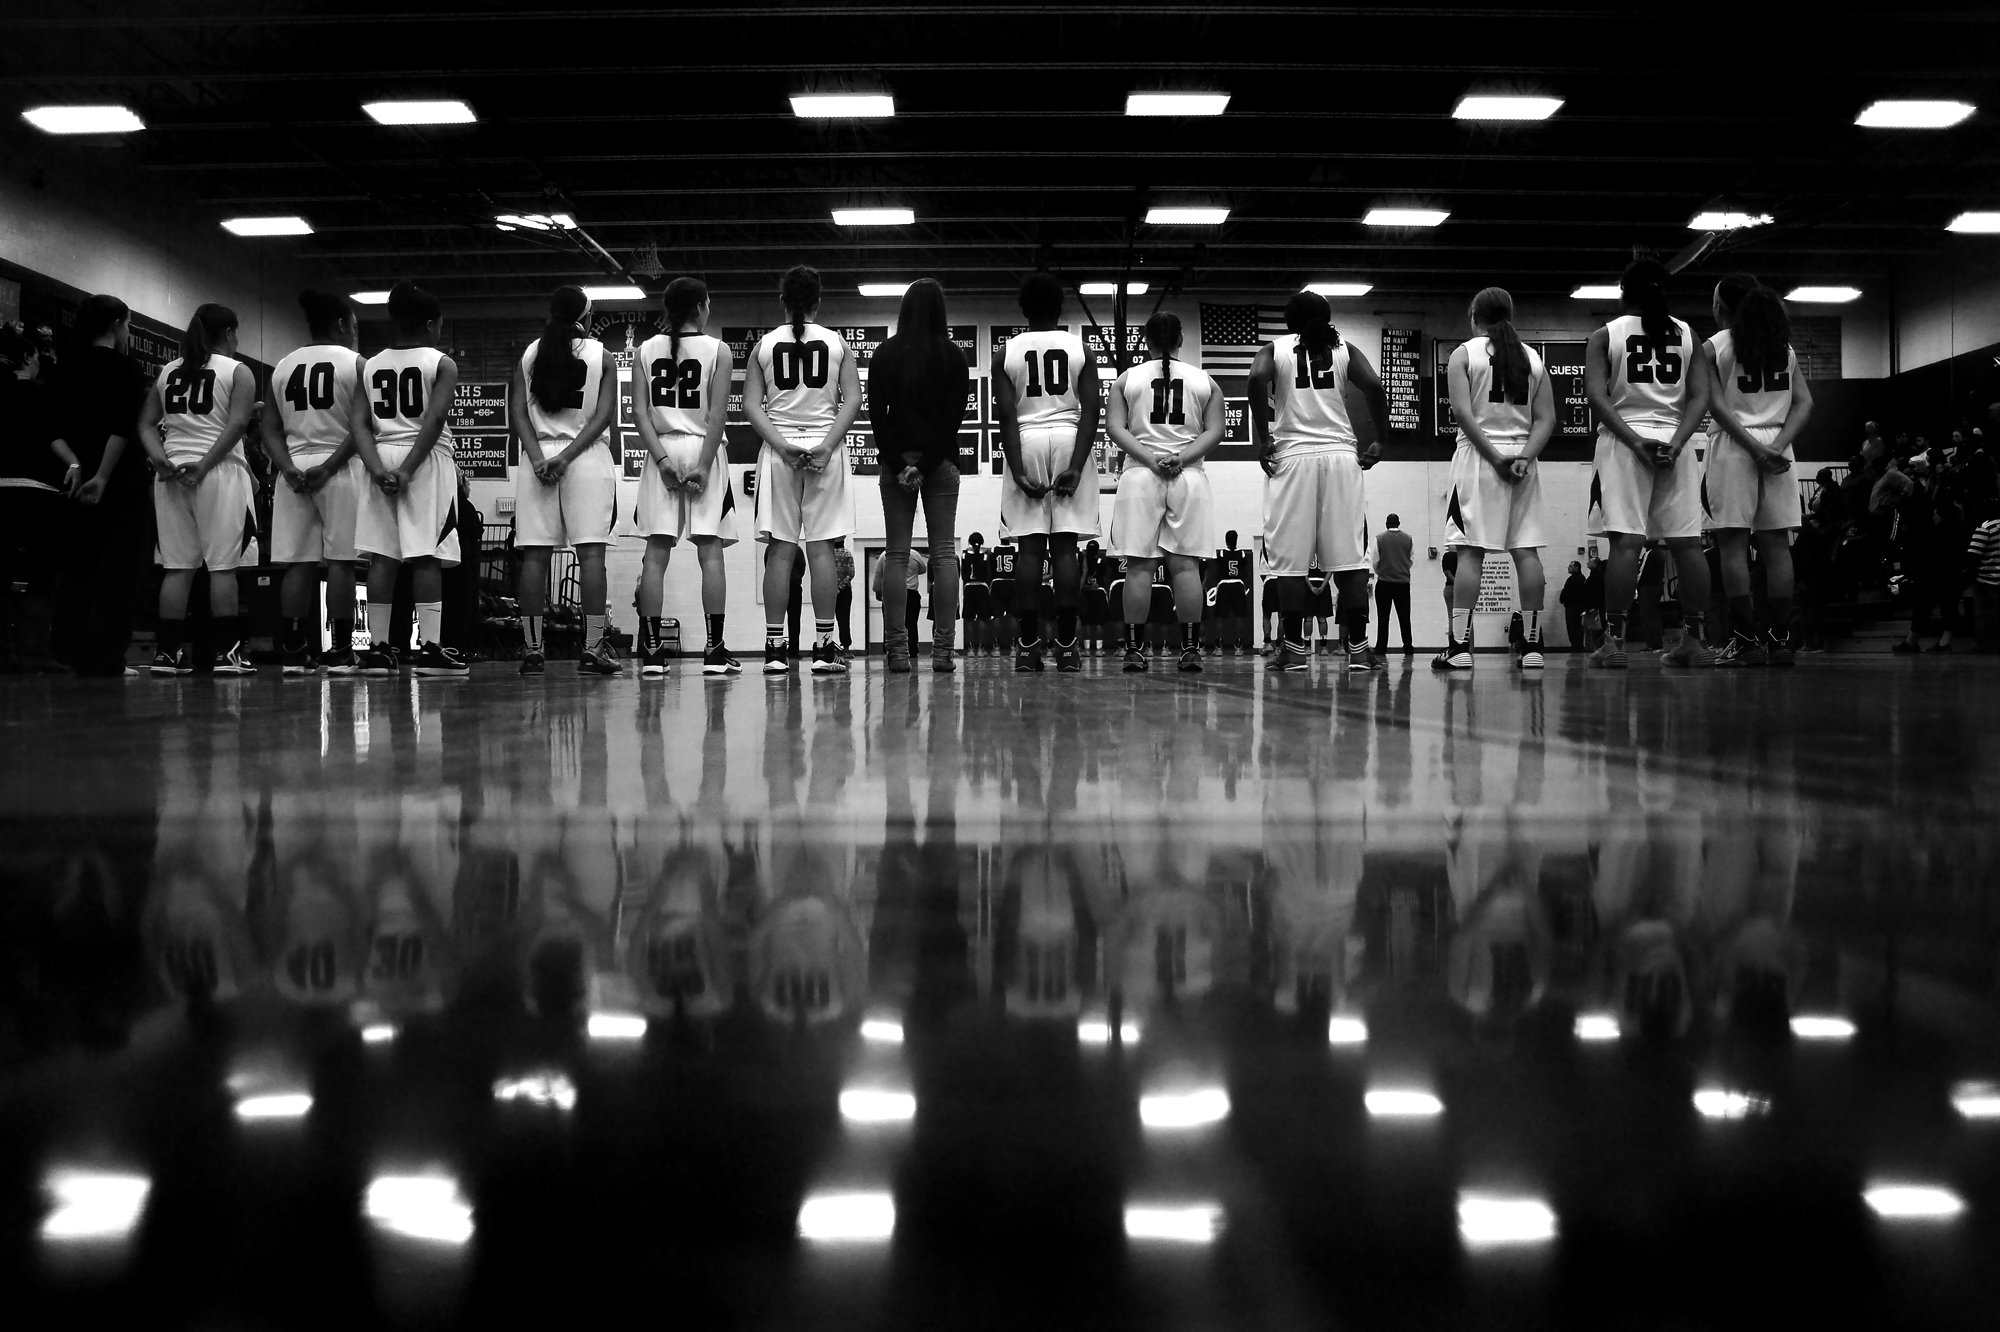 Atholton High School girl's basketball lines up for the national anthem before the start of the regional finals game in Columbia, Maryland on March 8, 2014.